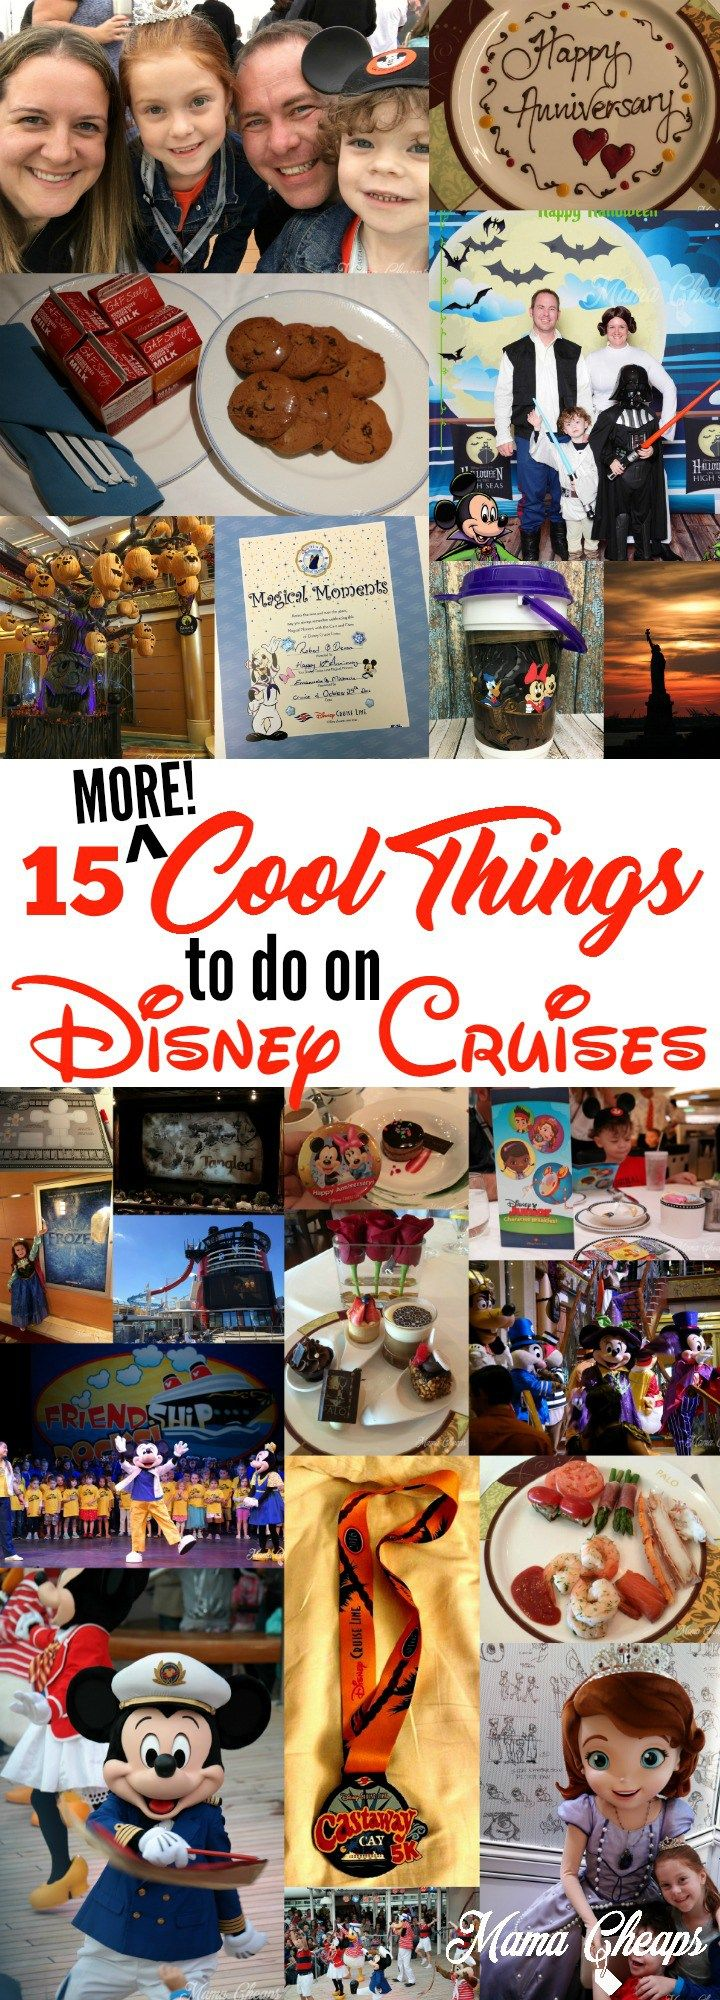 15 More Cool Things To Do On Disney Cruises Disney